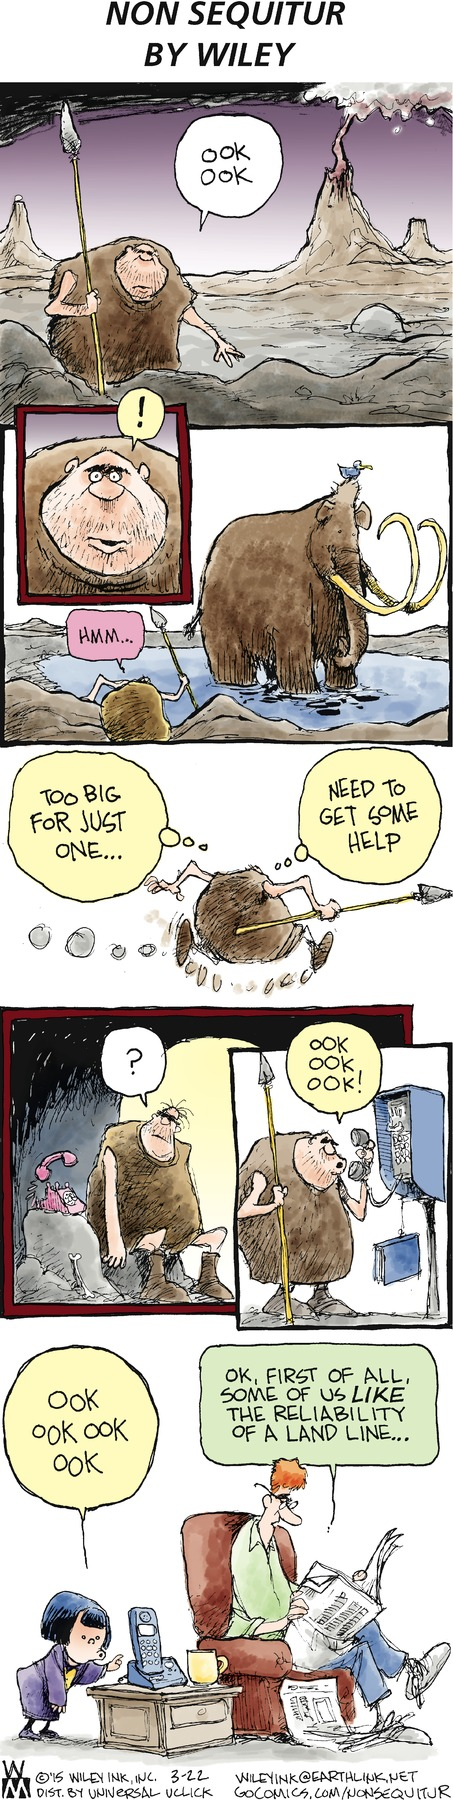 Non Sequitur Comic Strip for March 22, 2015